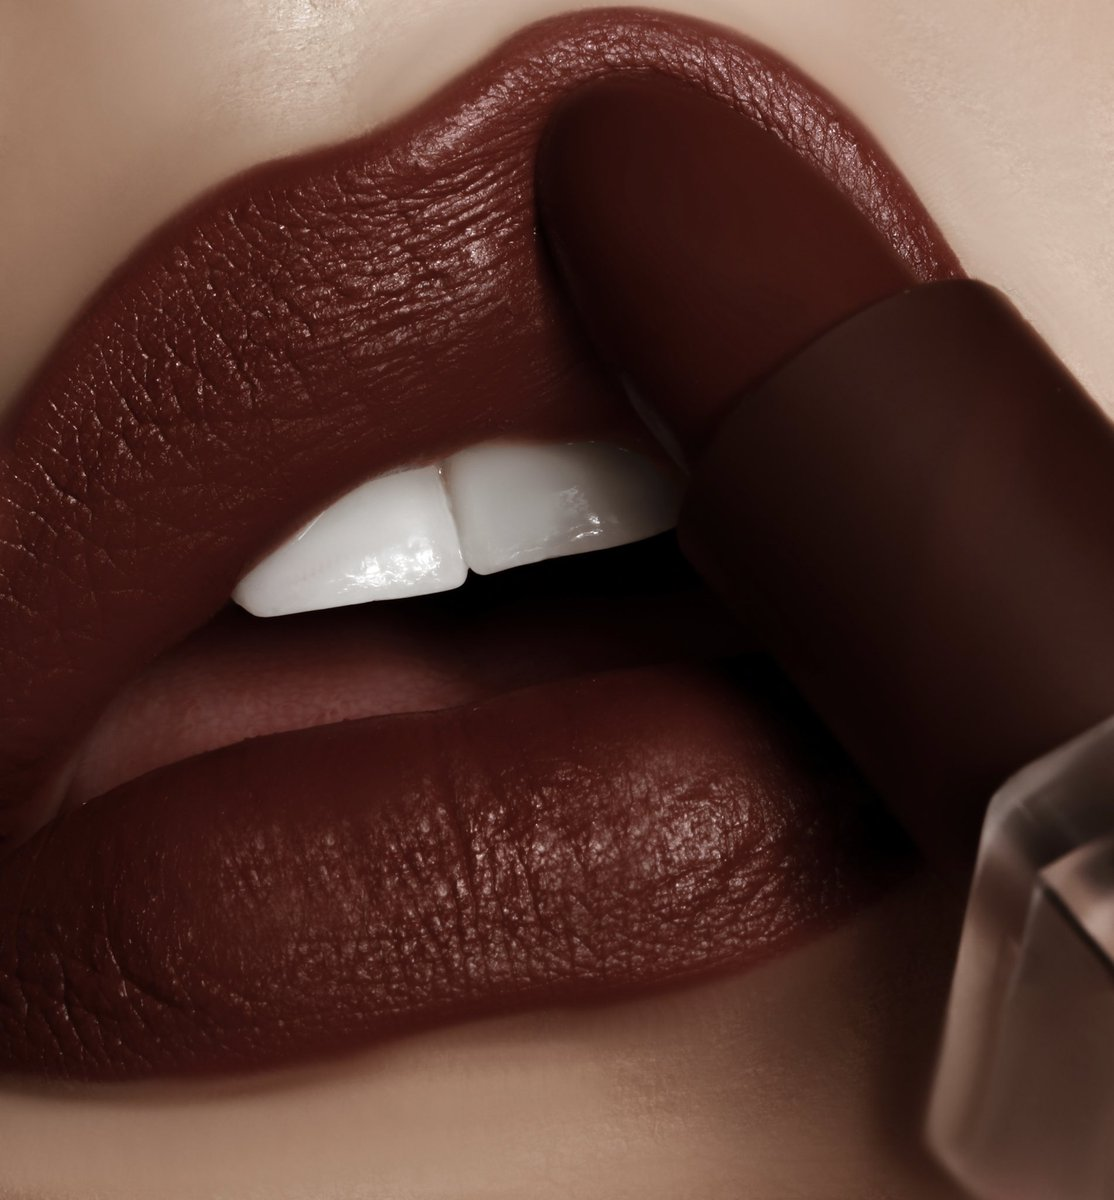 Matte Cocoa 90's Chic Lipstick is a warm reddish brown shade. This new lipstick formula provides a velvet matte finish with a comfortable non-drying wear. Shop it for $18 today at  http://KKWBEAUTY.COM   #KKWBEAUTY